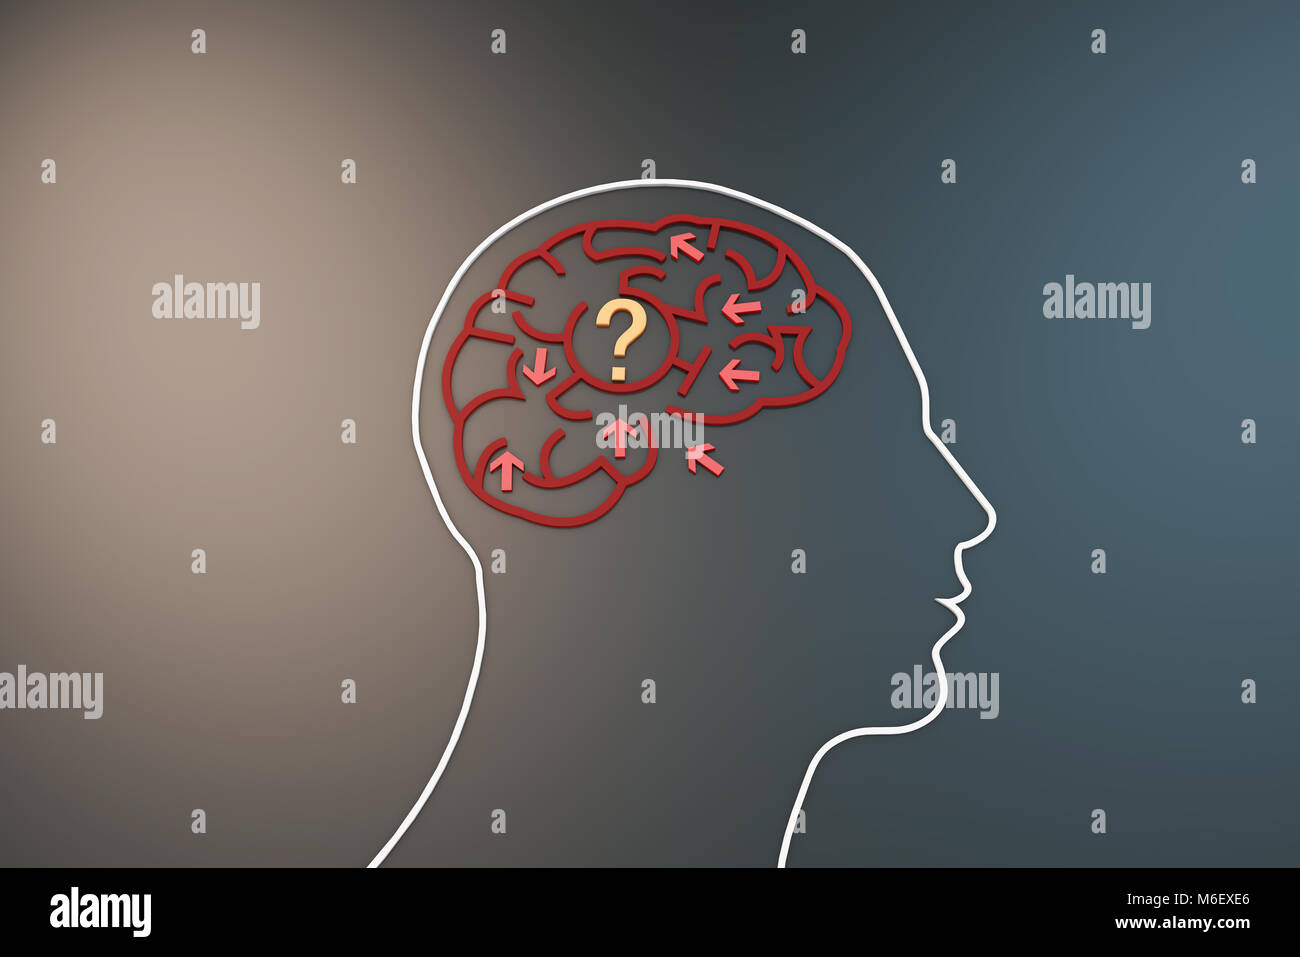 Brain with maze, chaotic arrows, thinking confusion - Stock Image